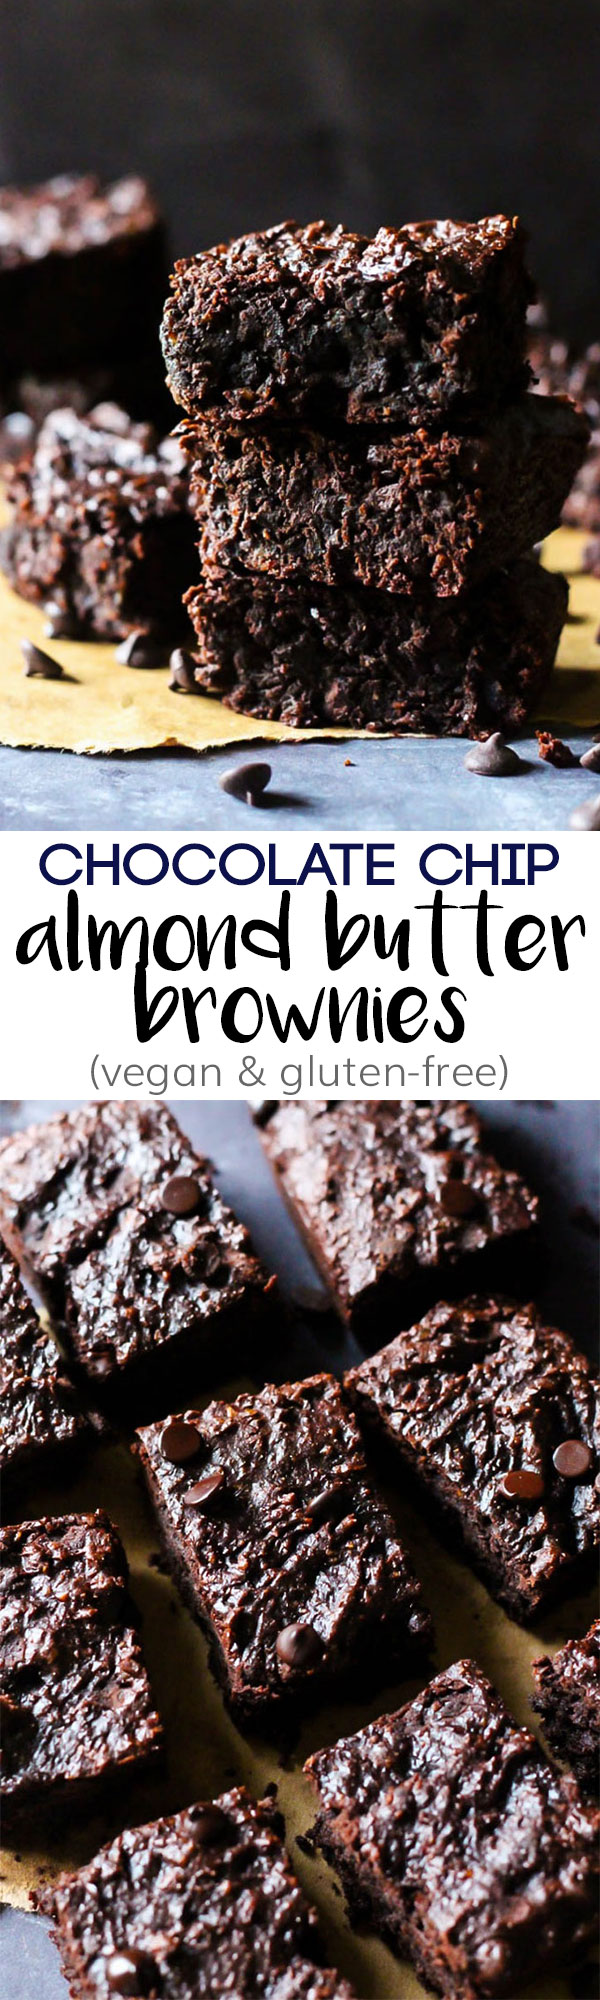 These Chocolate Chip Almond Butter Brownies taste like a decadent dessert, but they're also vegan, gluten-free & date-sweetened! Rich, fudgy & satisfying.